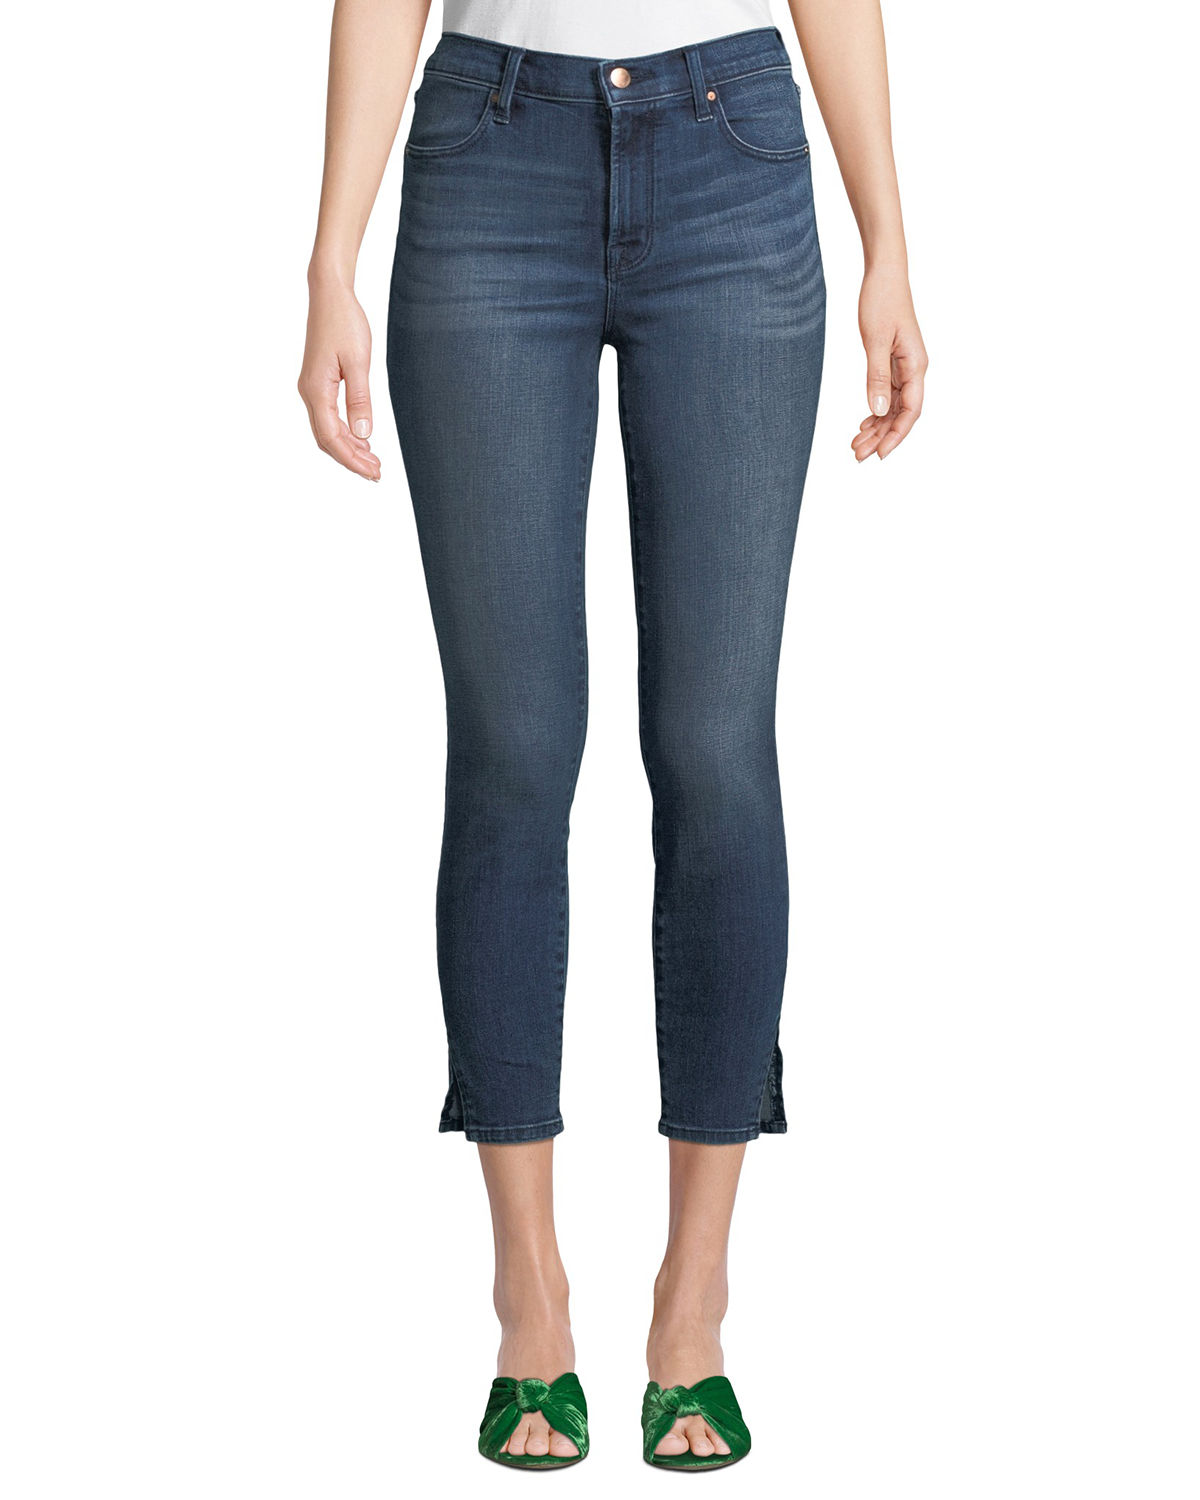 Alana Bleached High Rise Skinny Ankle Jeans